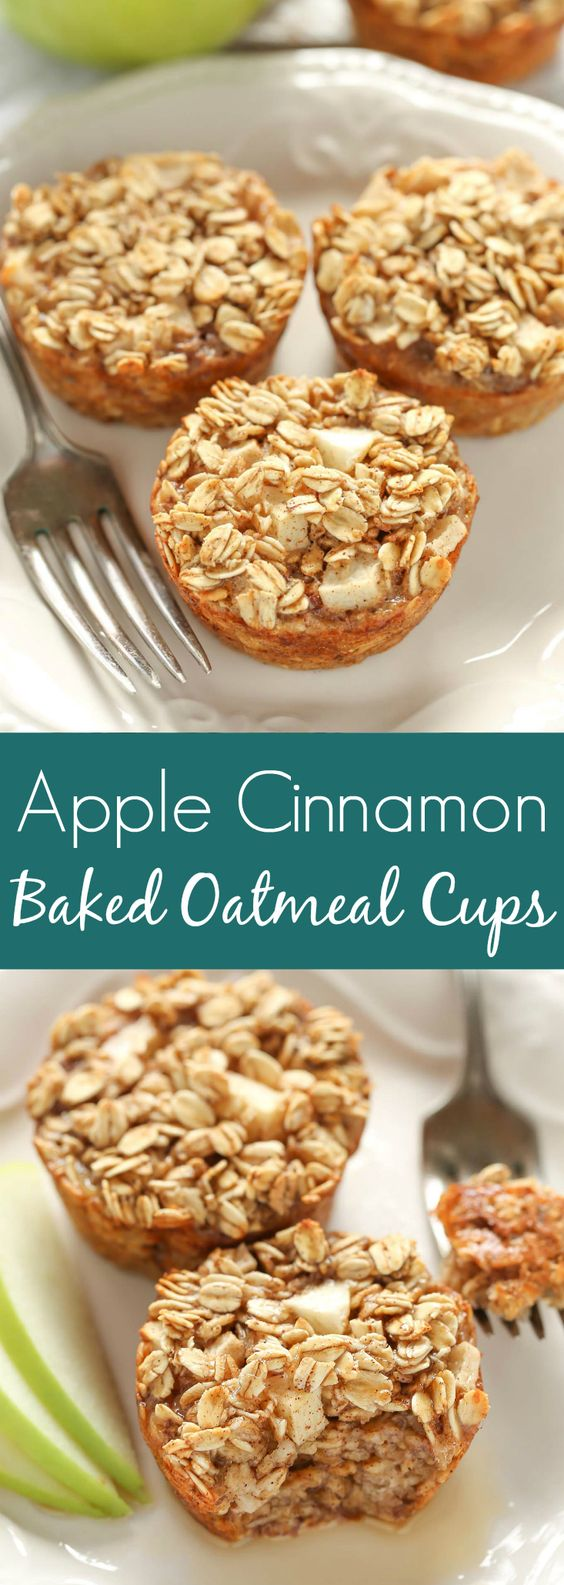 Delicious Apple Cinnamon Baked Oatmeal Cups